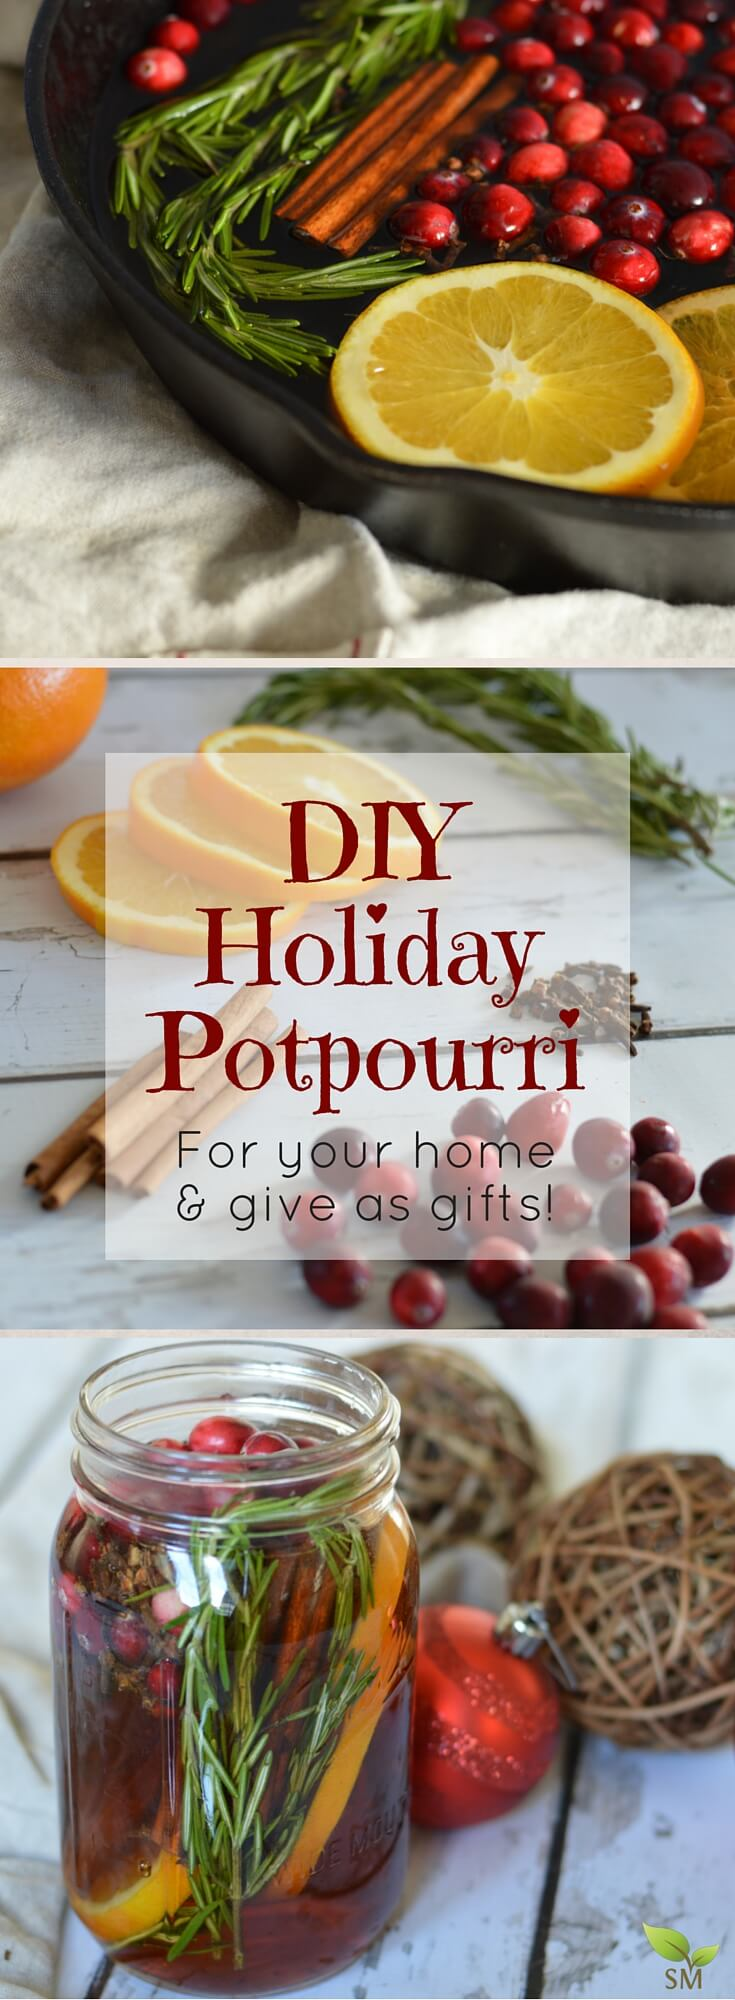 Here's a fantabulous DIY Holiday Potpourri recipe (the perfect non-toxic seasonal scent for your home AND to give as gifts in a mason jar this holiday) - Scratch Mommy